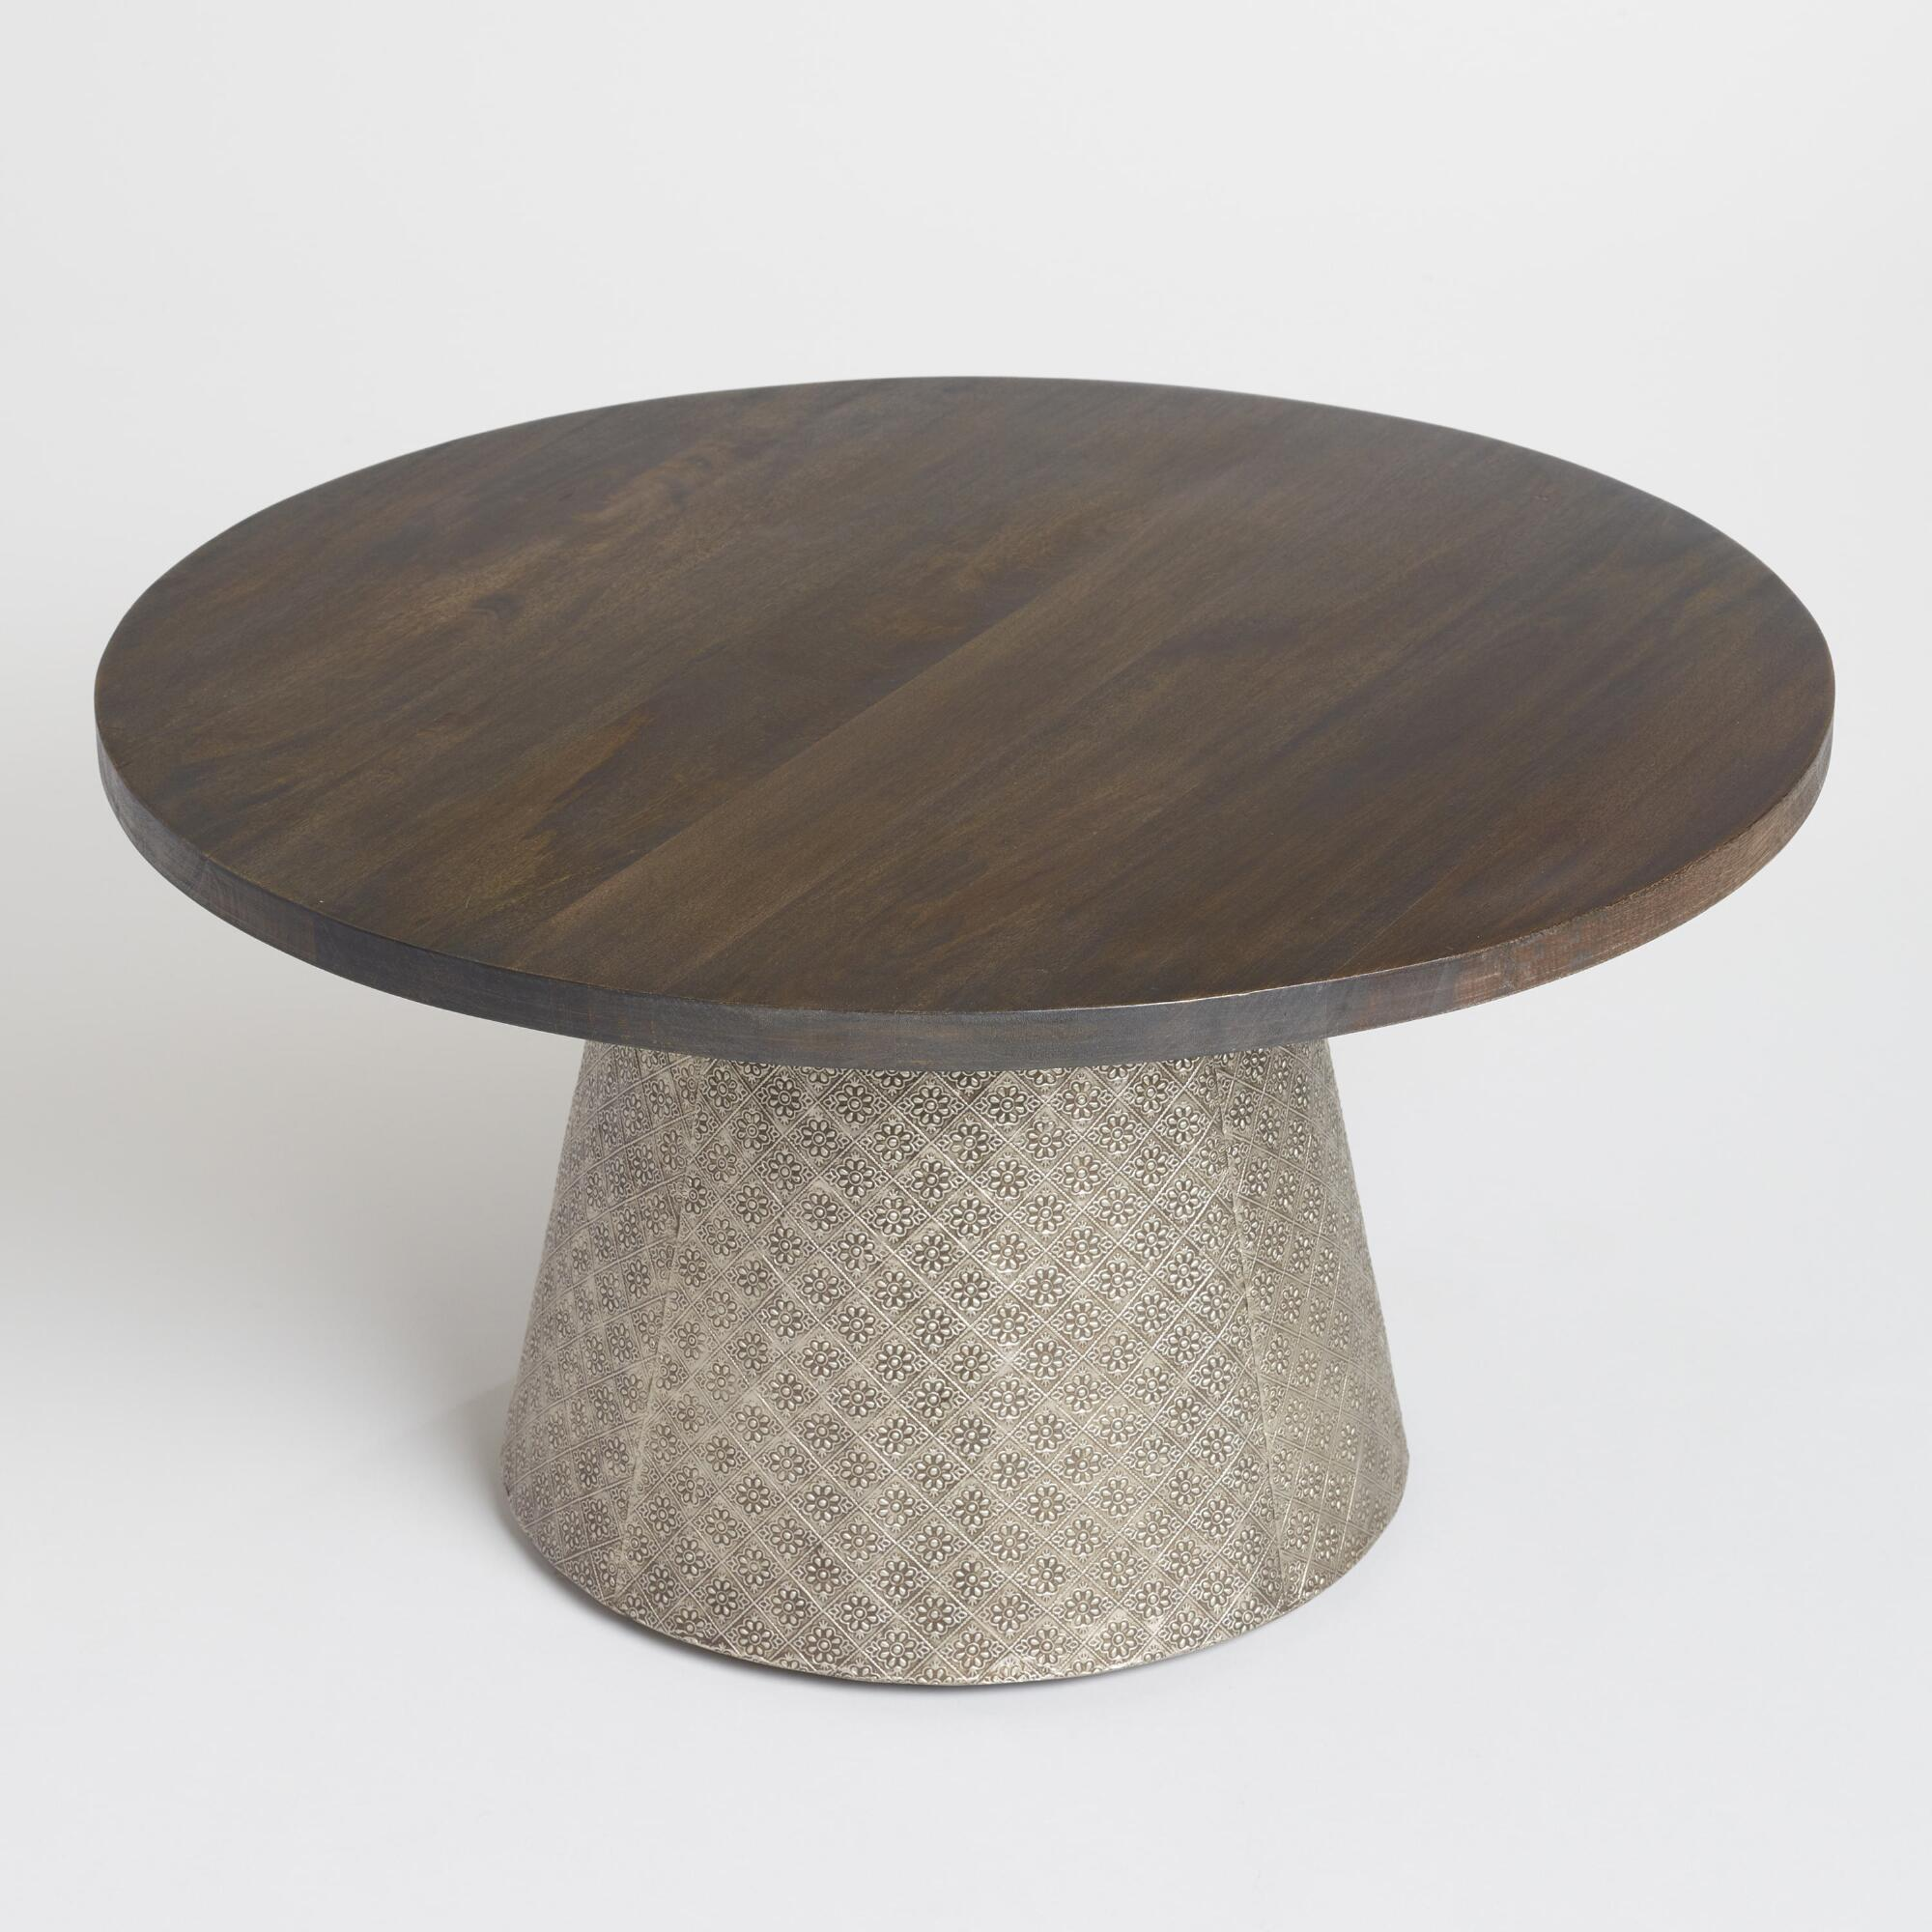 coffee tables end accent world market iipsrv fcgi distressed blue table round wood and embossed metal kiran hafley target college dorm essentials elegant dining room furniture